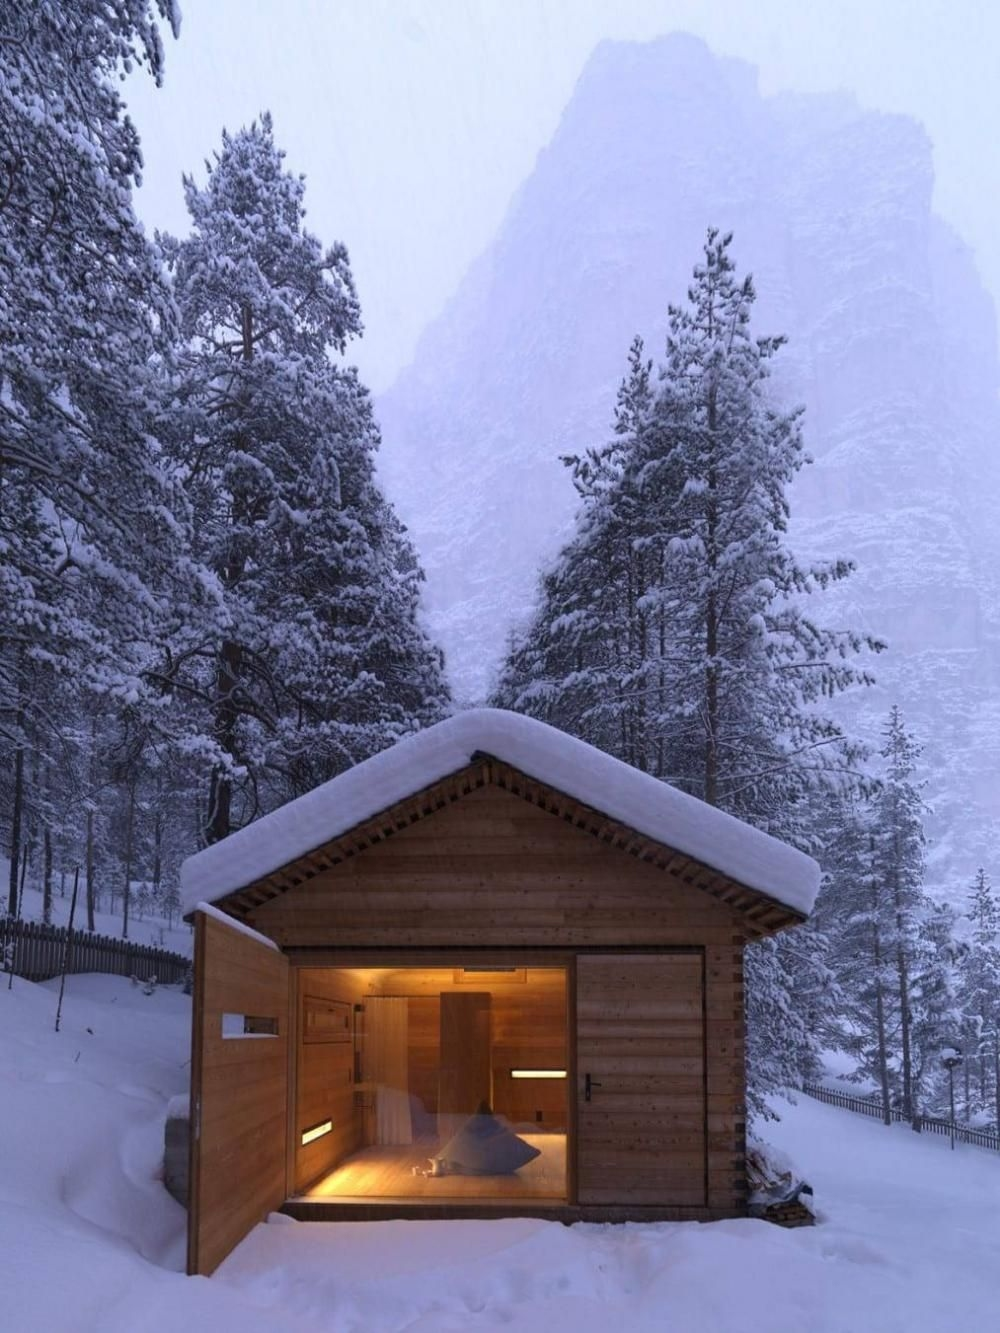 72 Mountain Chalet House Plans Awesome Remote Cottage with Views the Dolomite Mountains